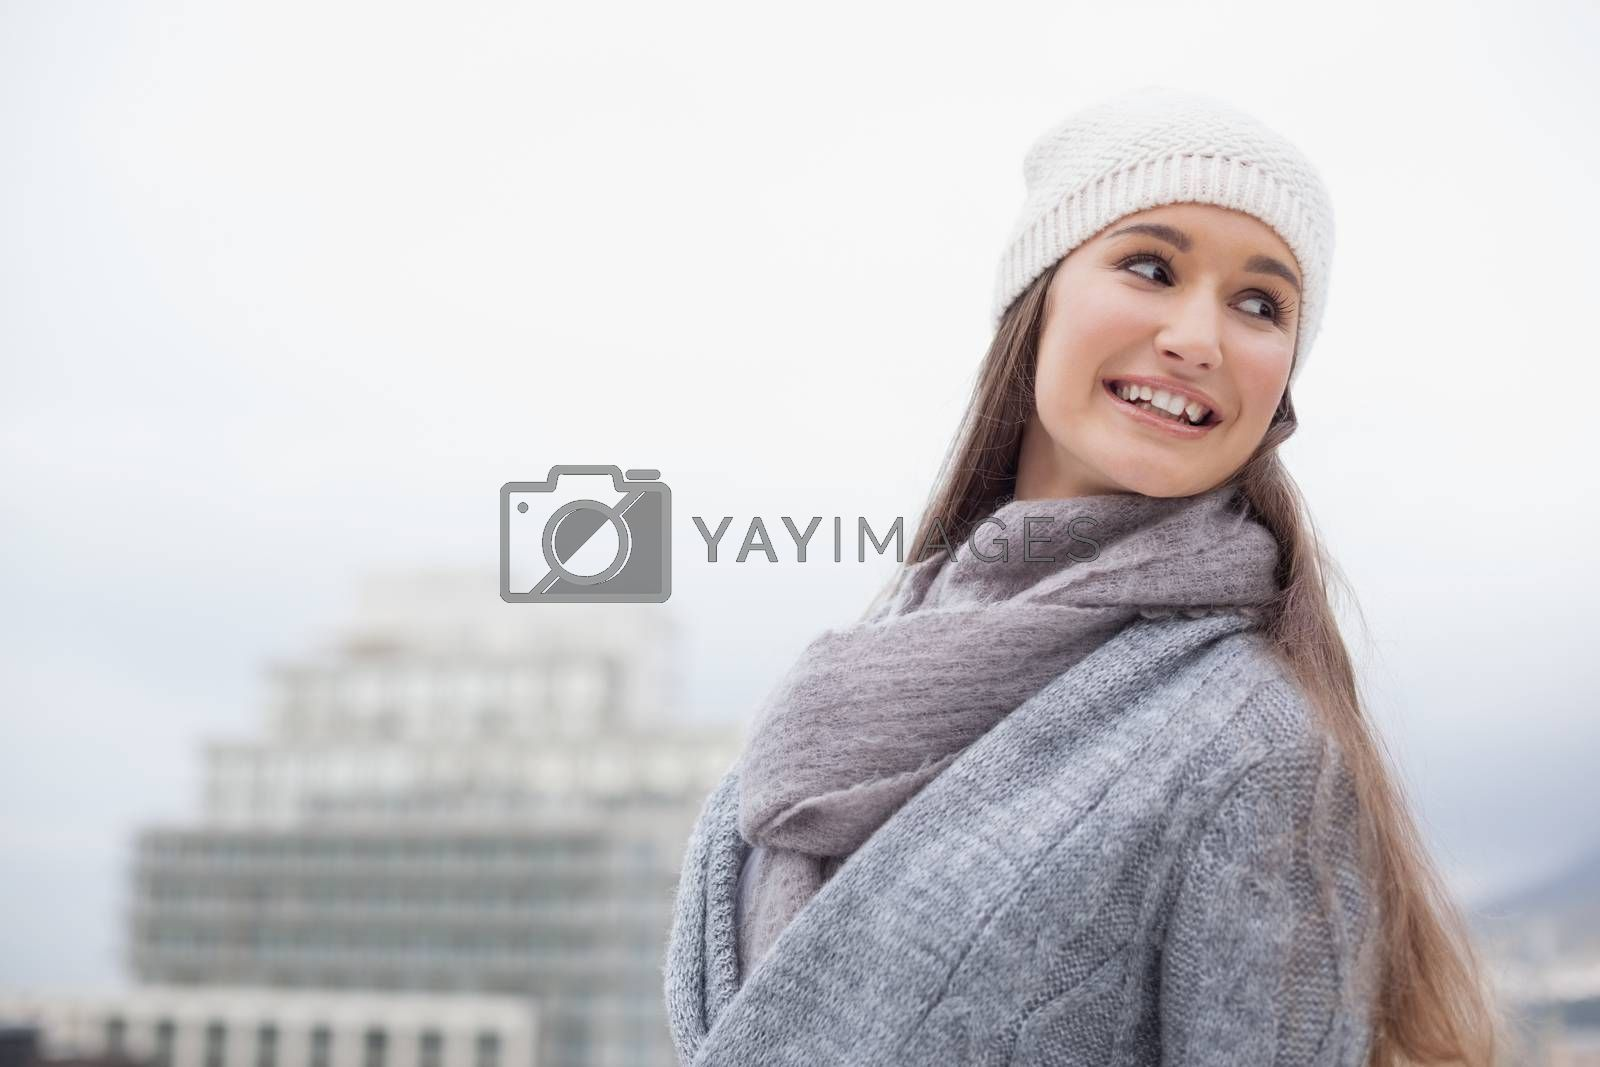 Pretty brunette with winter clothes on posing on a cold grey day